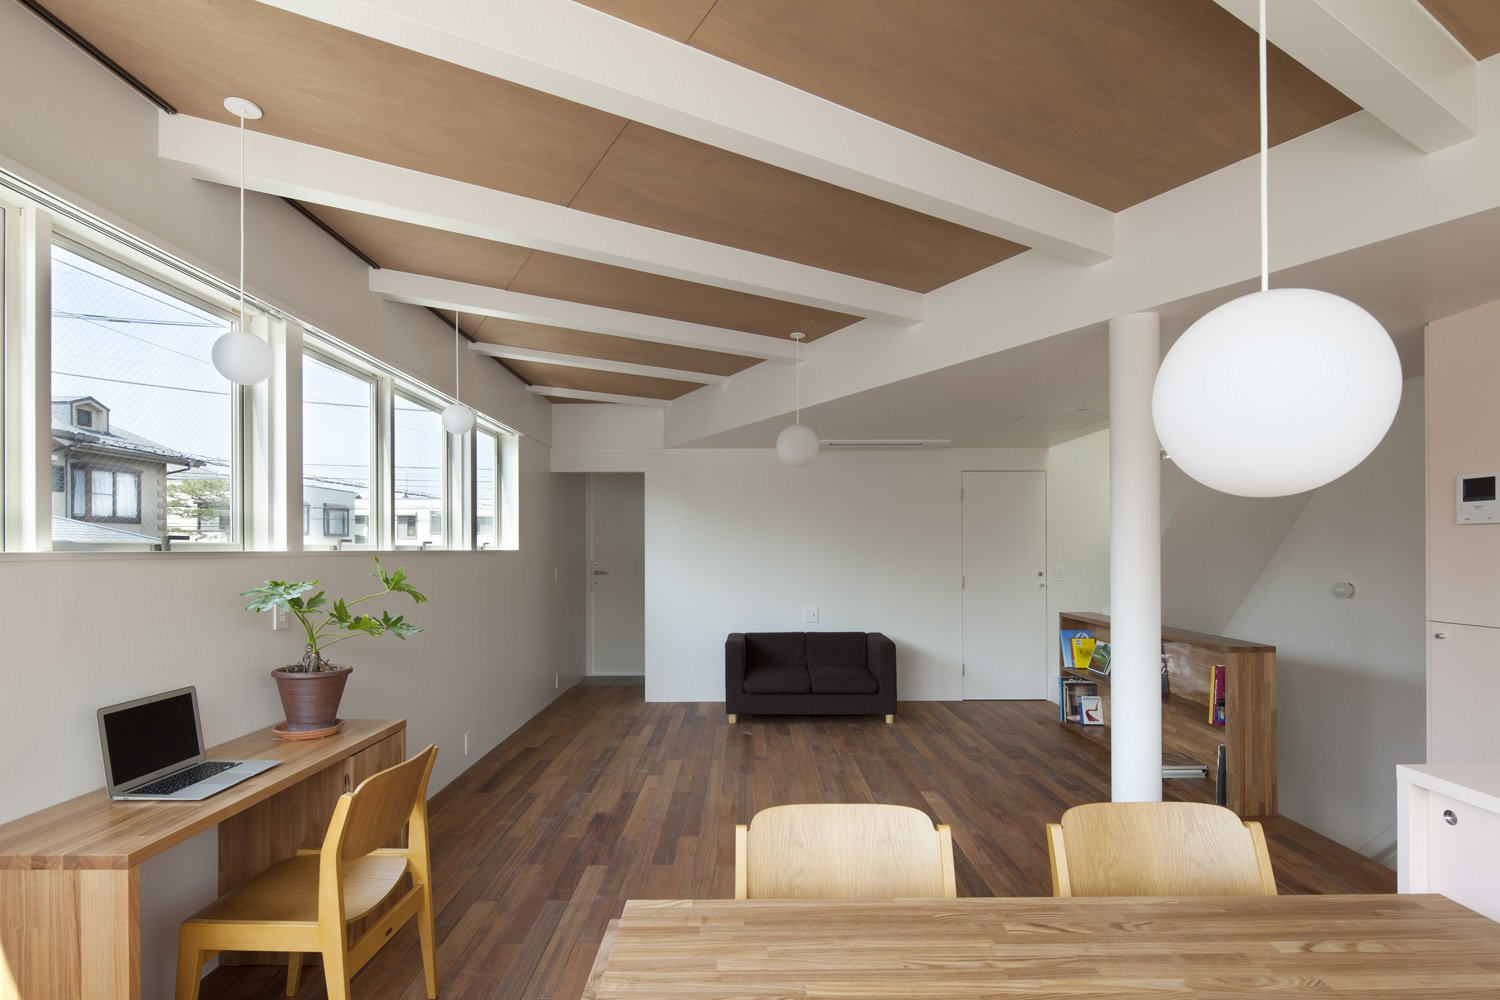 The ceilings of the two houses were at slightly different heights, an incongruity Nakasi played up for visual punch. He exposed the beams in the higher ceiling and painted them white to match the smooth finish of the lower one. The desk beneath the window is from Muji.  Modern Homes in Tokyo by William Harrison from Half & Half House